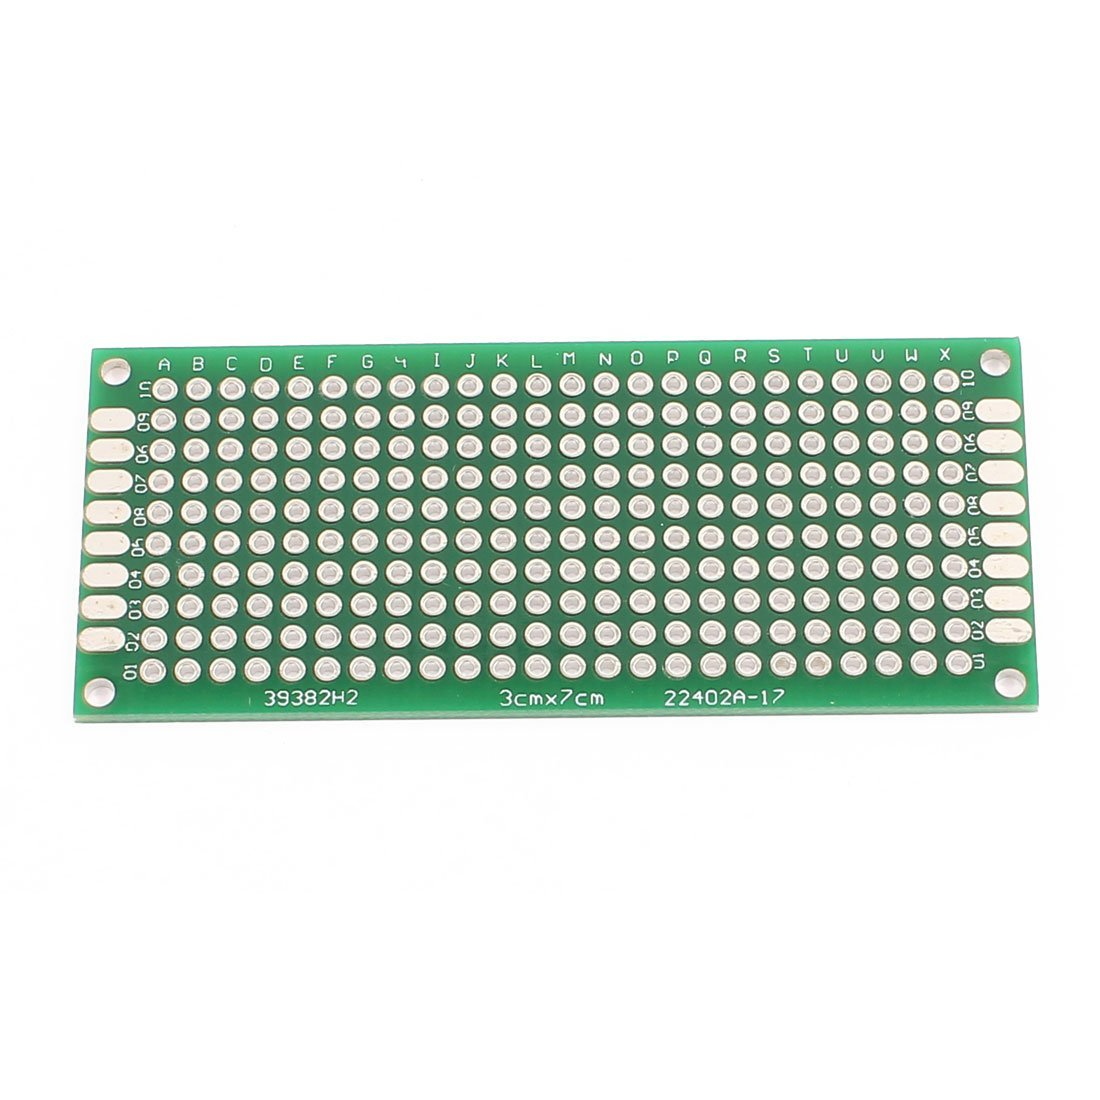 3*7cm Double Sided Tin Plated Universal Board Experimental Development Plate